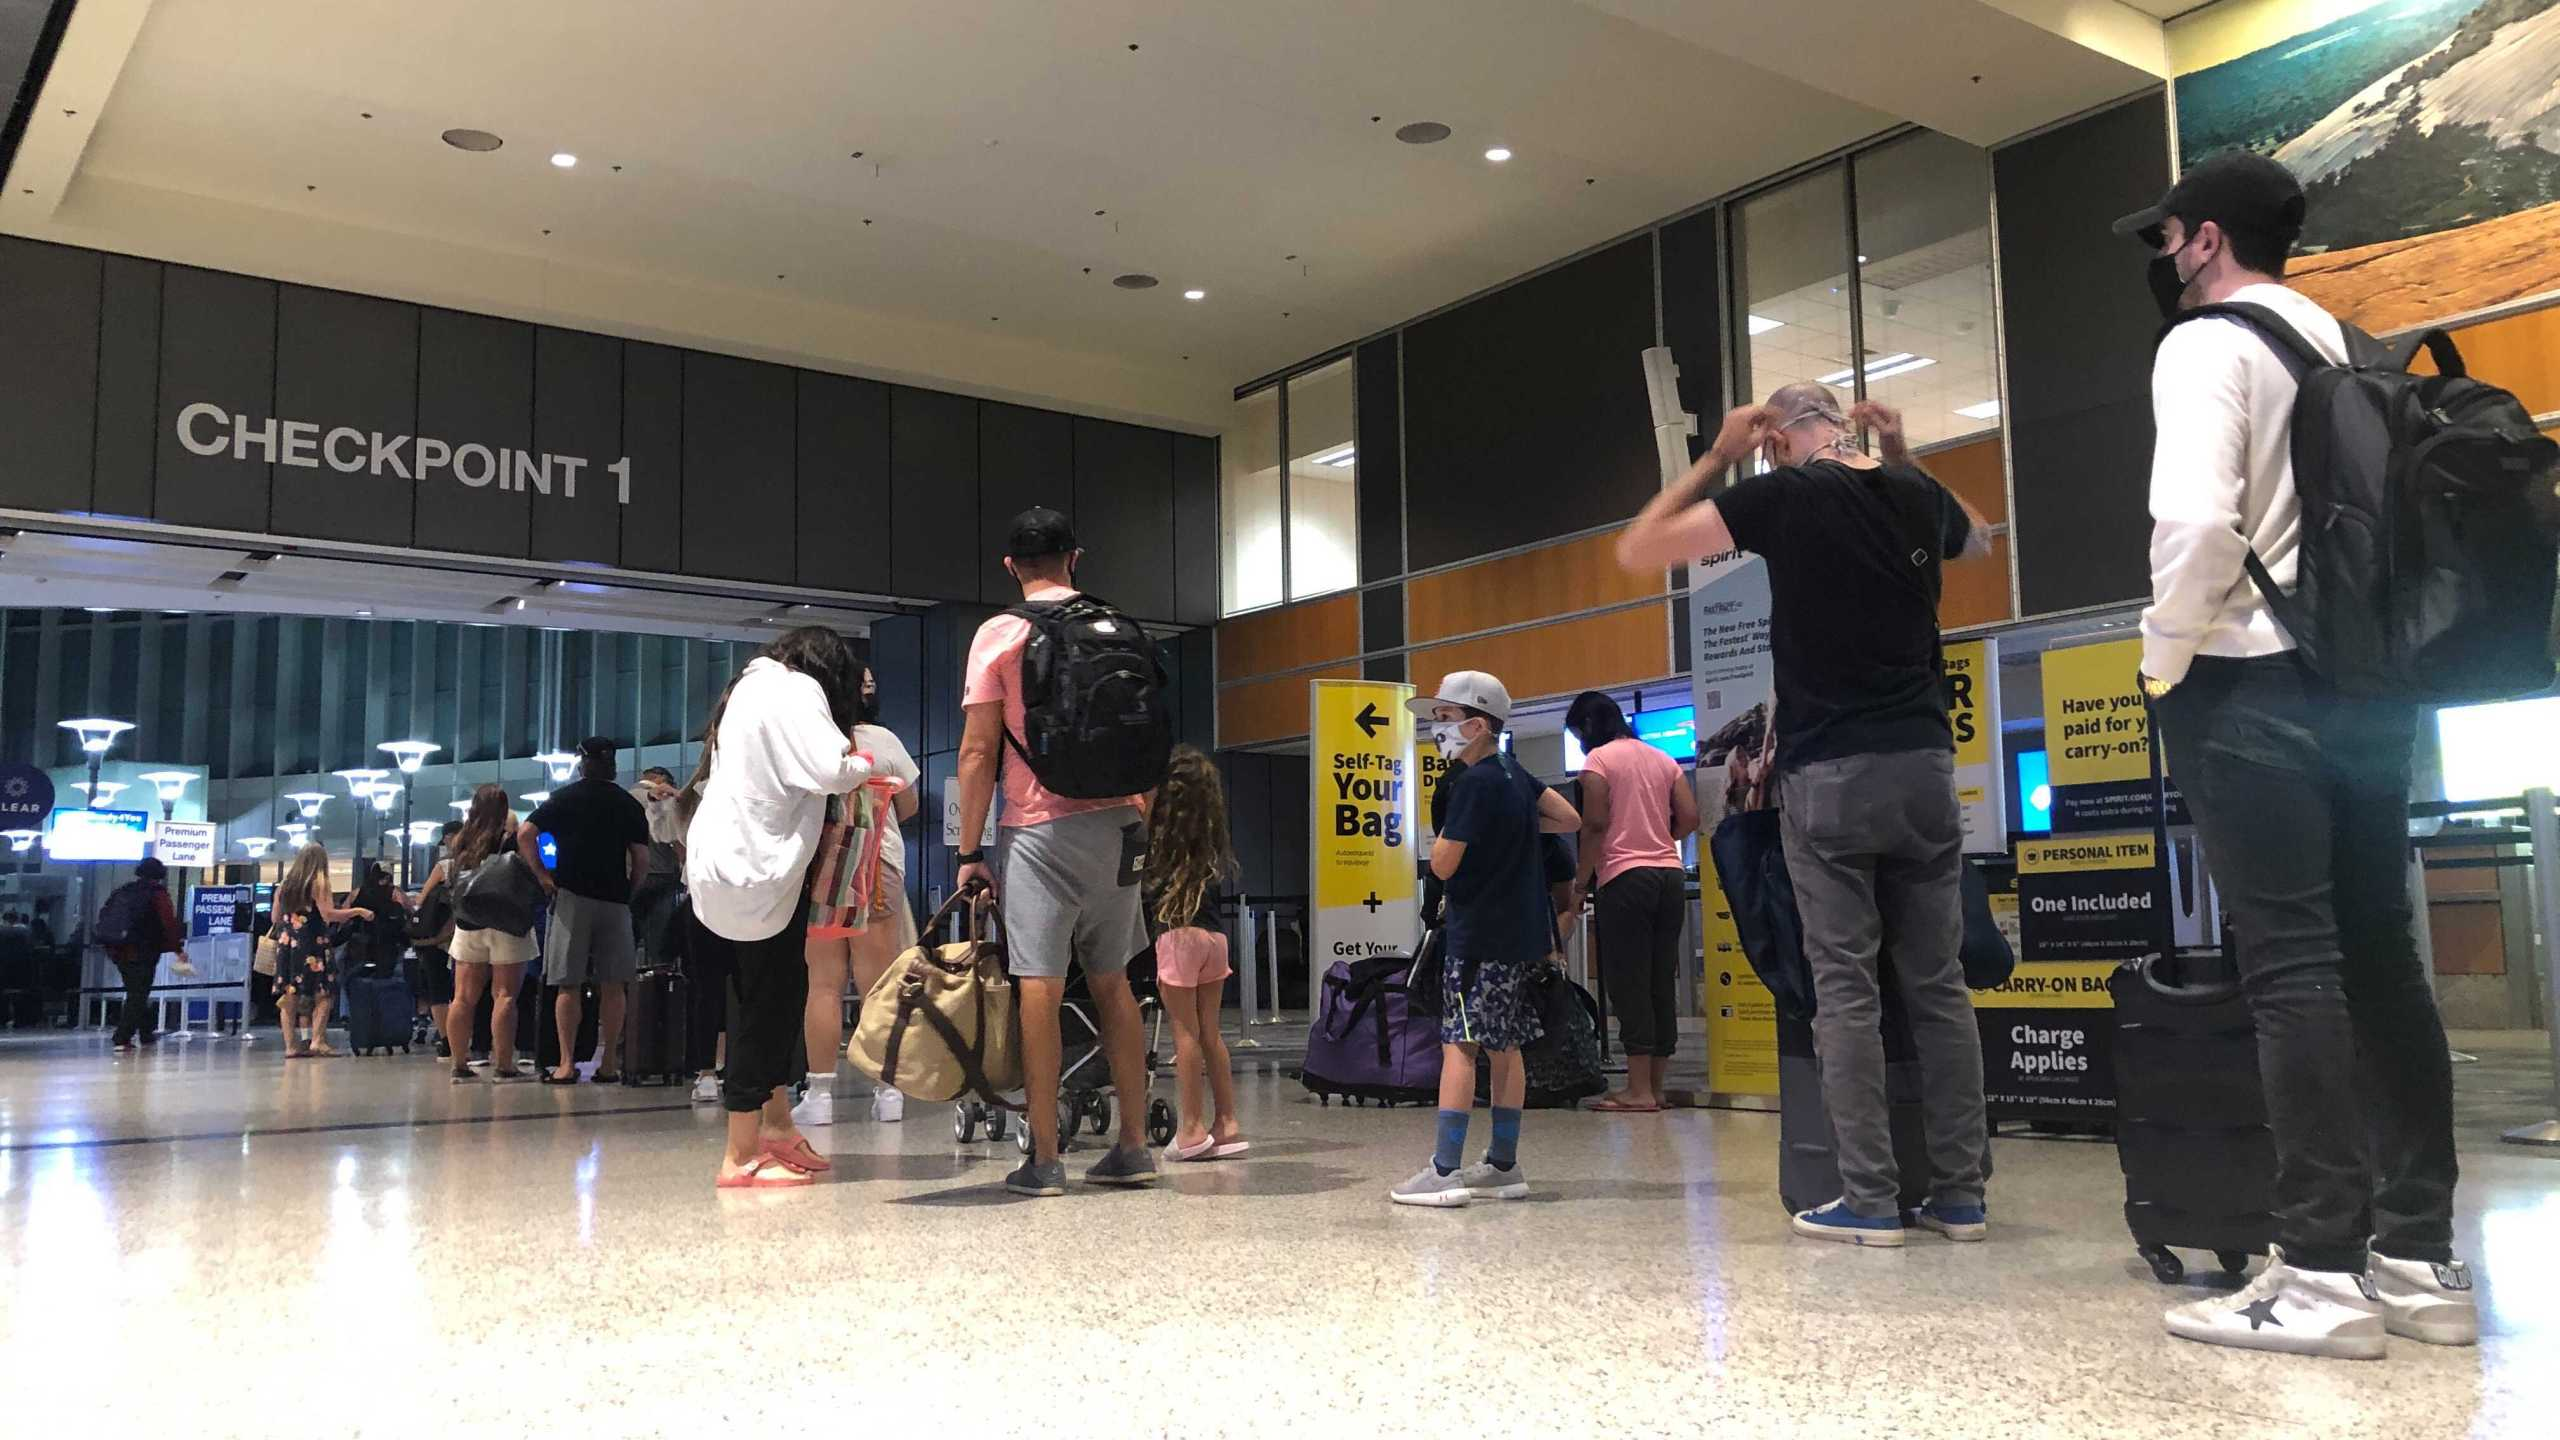 Officials at Austin-Bergstrom International Airport say if you have a flight before 8 a.m. to get to the airport t least 3 hours early to navigate the check-in process and security checkpoints. (KXAN photo/Julie Karam)